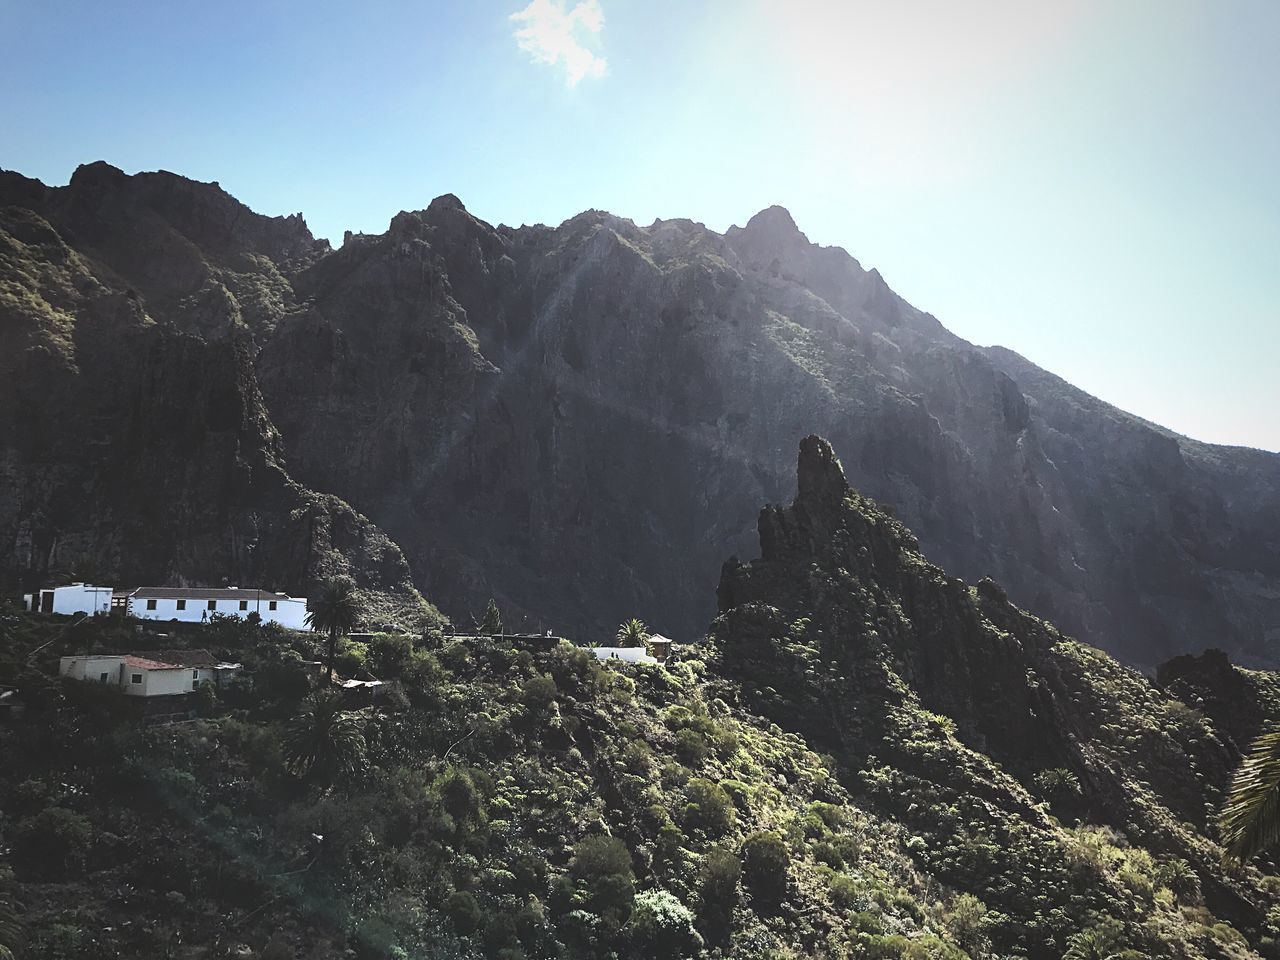 Mountain Beauty In Nature Nature Tree Scenics No People Outdoors Tranquility Sky Landscape Day Shelter Masca Tenerife Island Teneriffa Schlucht Canyon